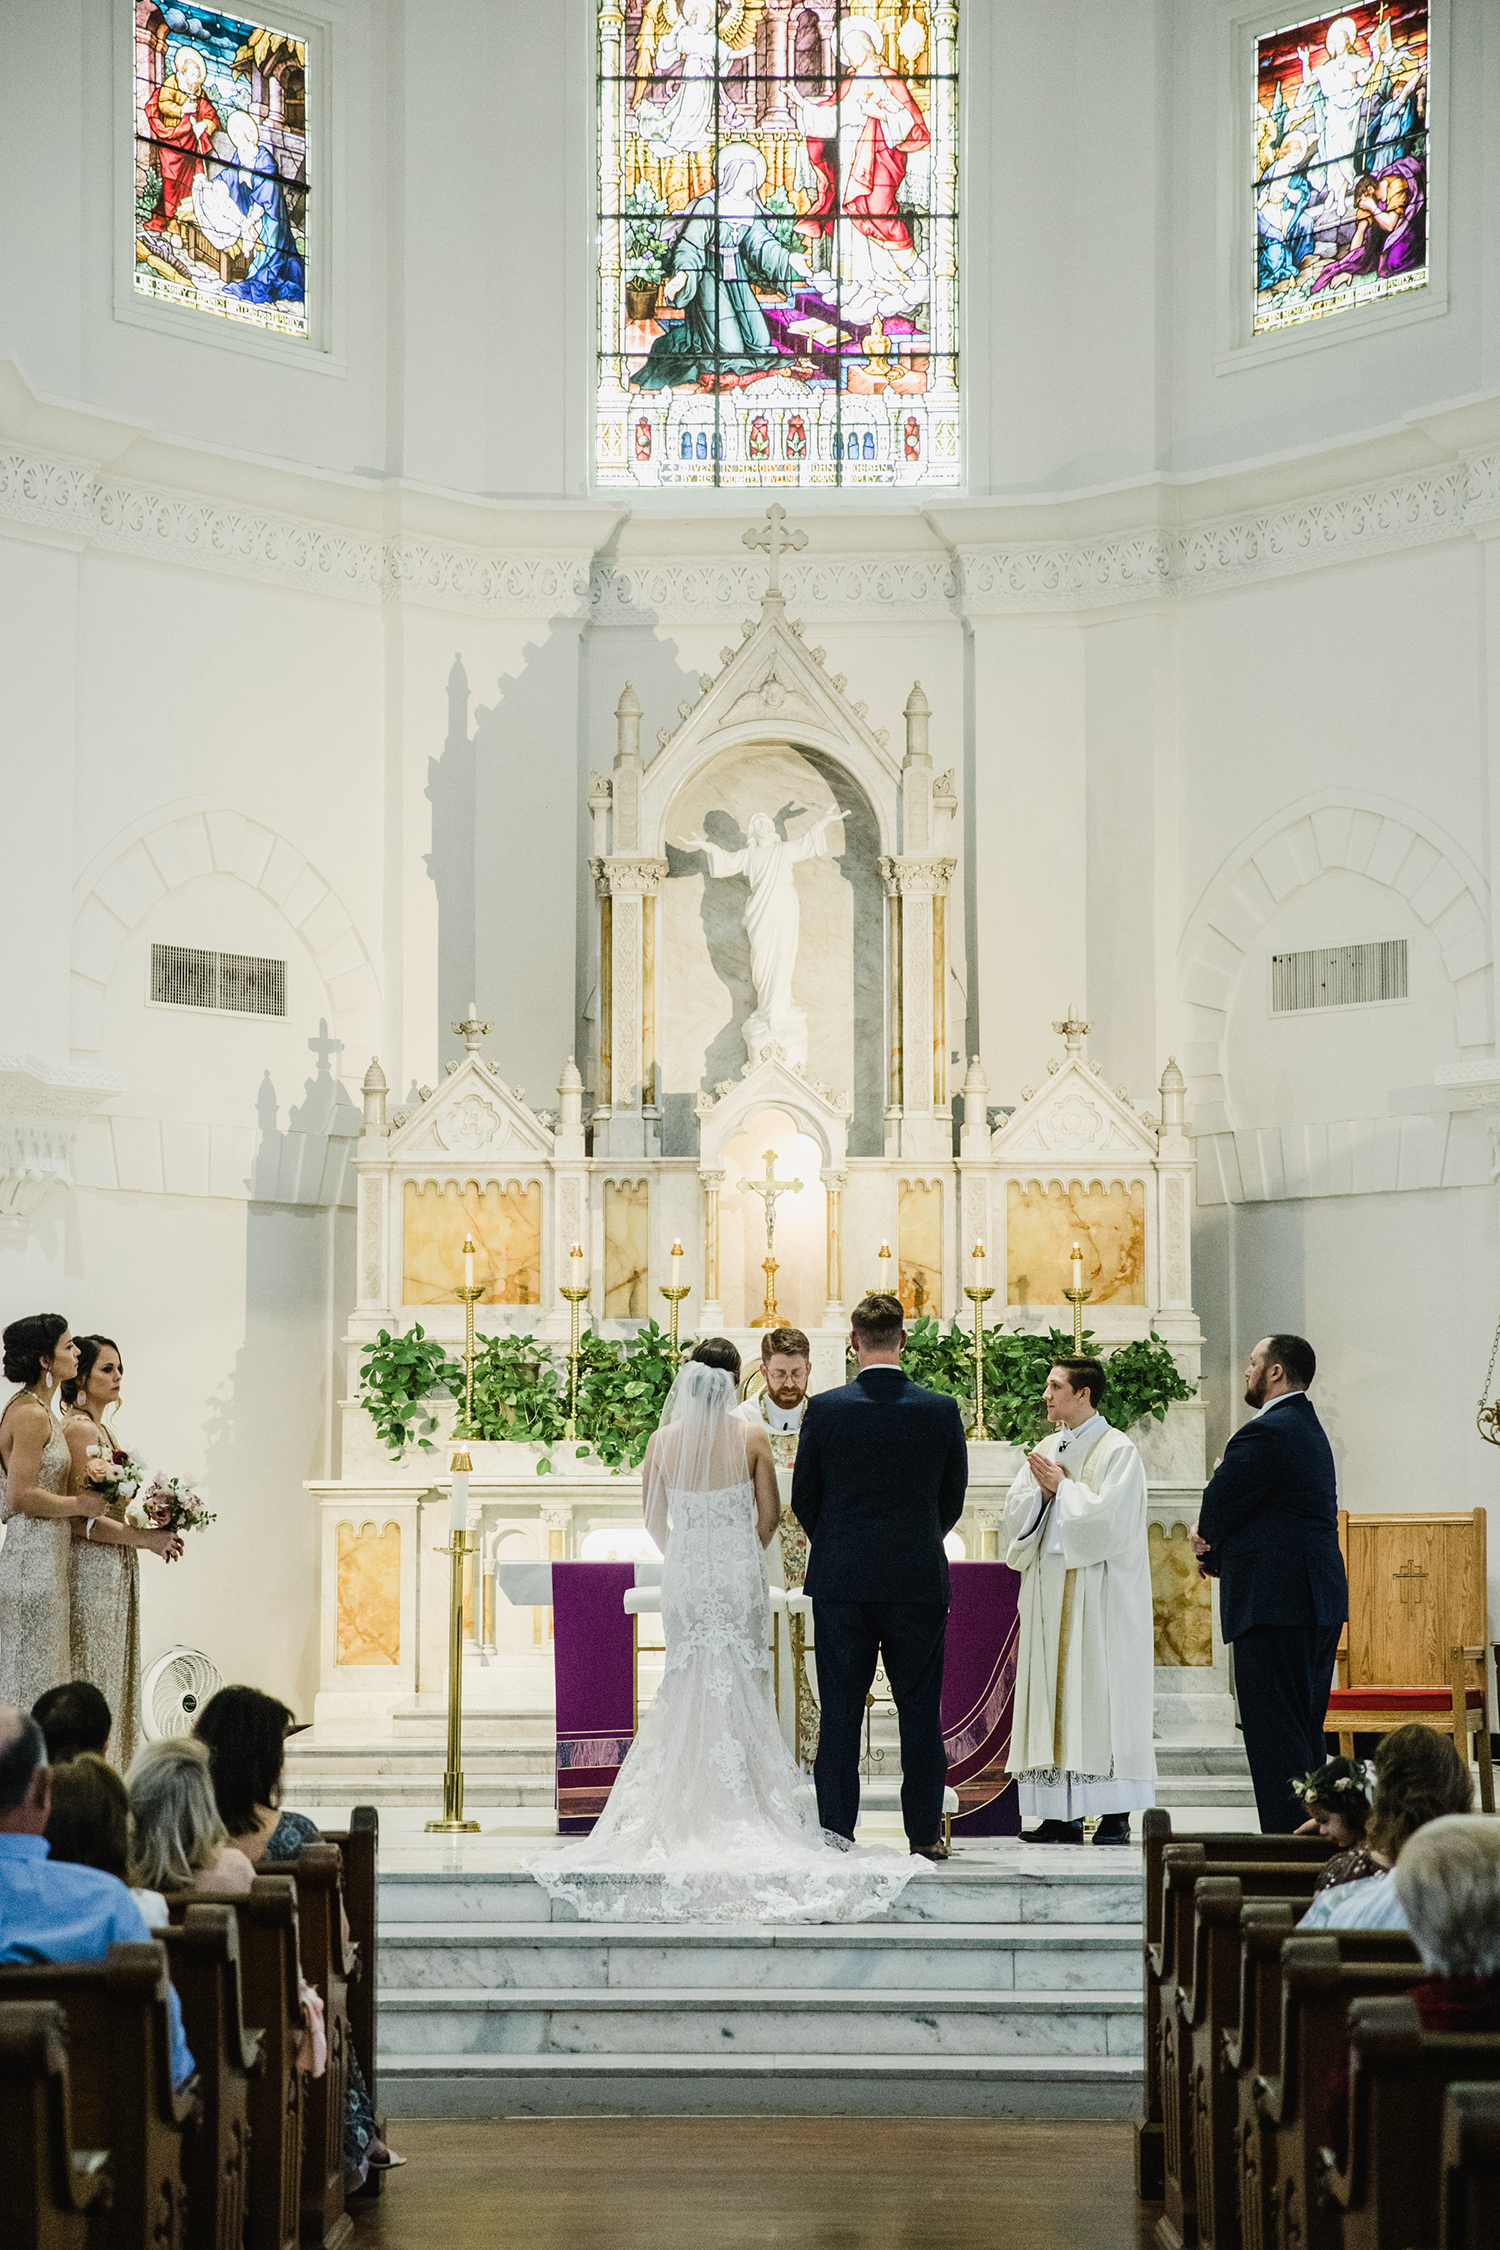 wedding ceremony - vows - altar - church - chapel